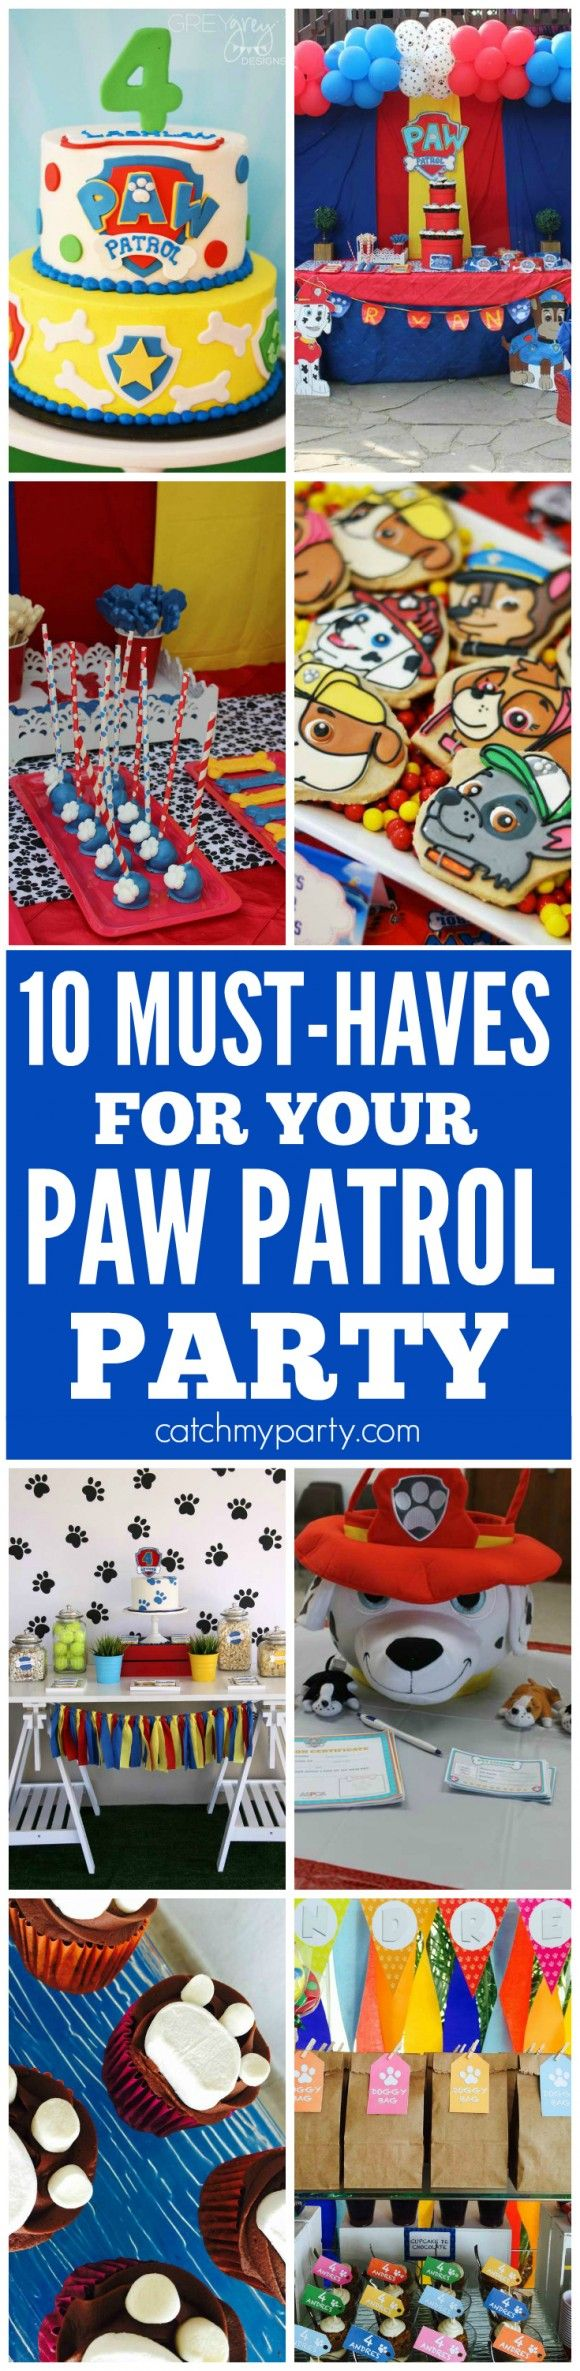 Check out these Paw Patrol party ideas, from party food to decorations, favors and more!